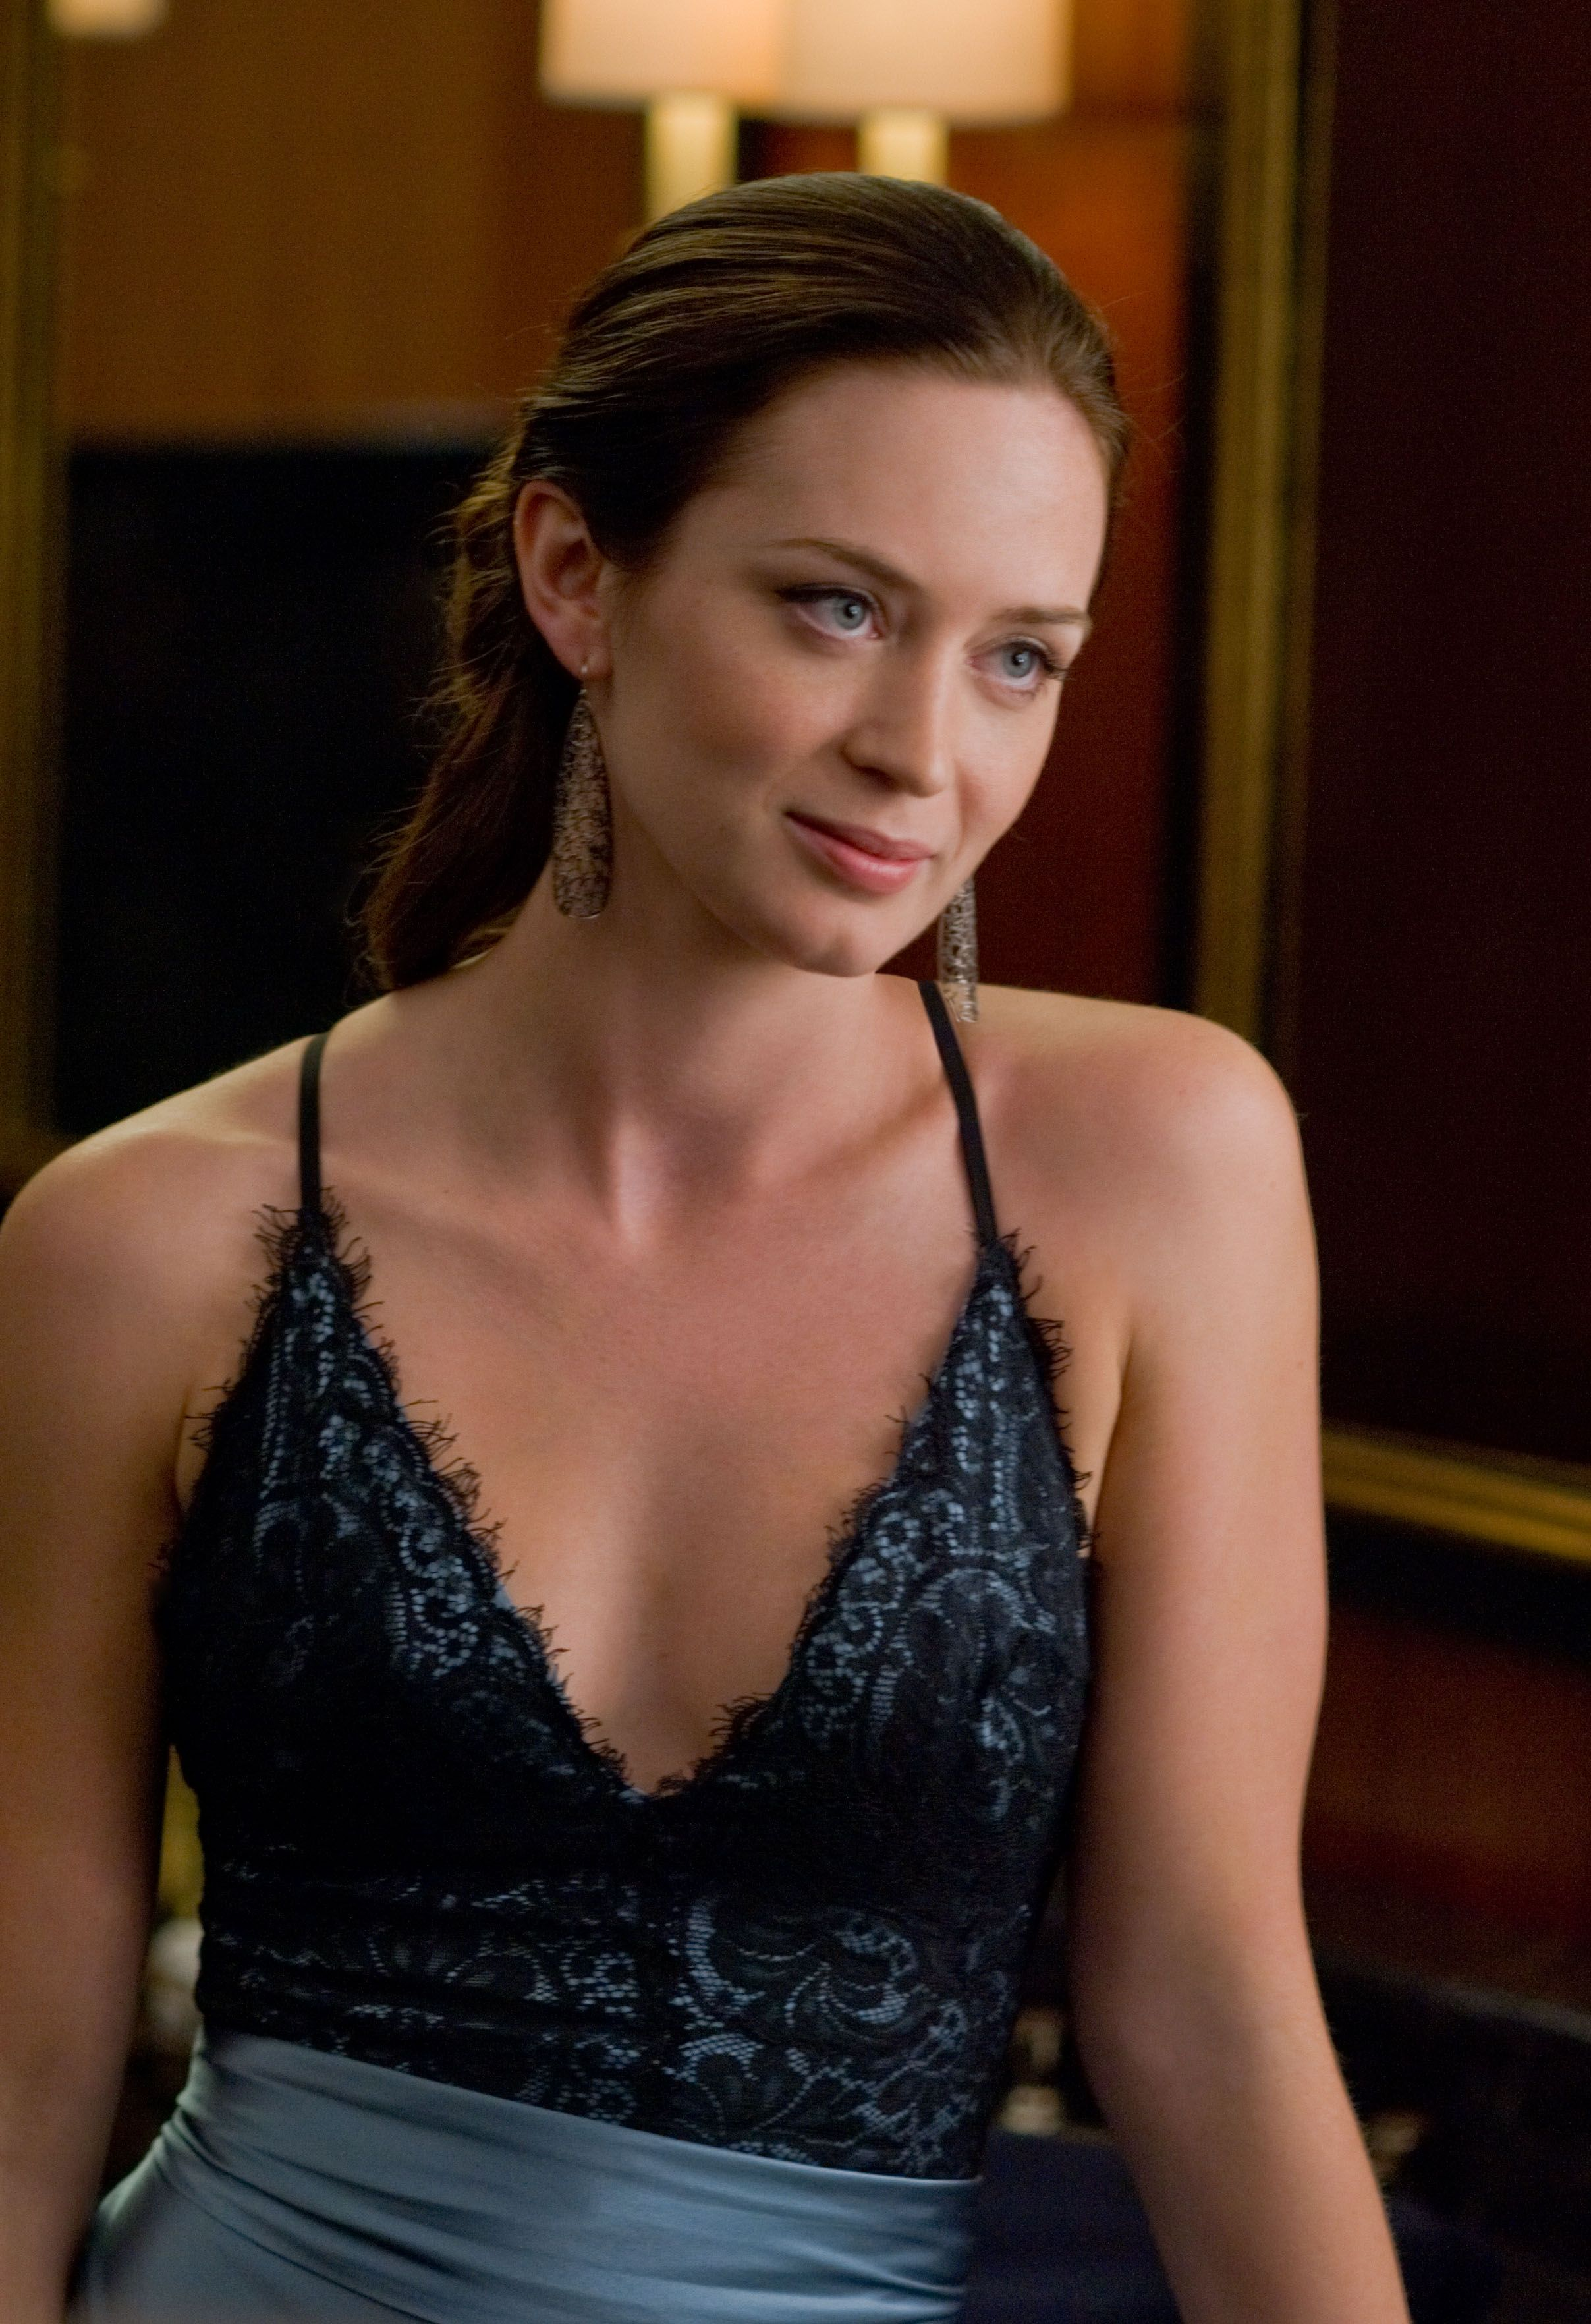 Emily Blunt (born 1983 (naturalized American citizen) nudes (36 foto and video), Ass, Bikini, Twitter, swimsuit 2019